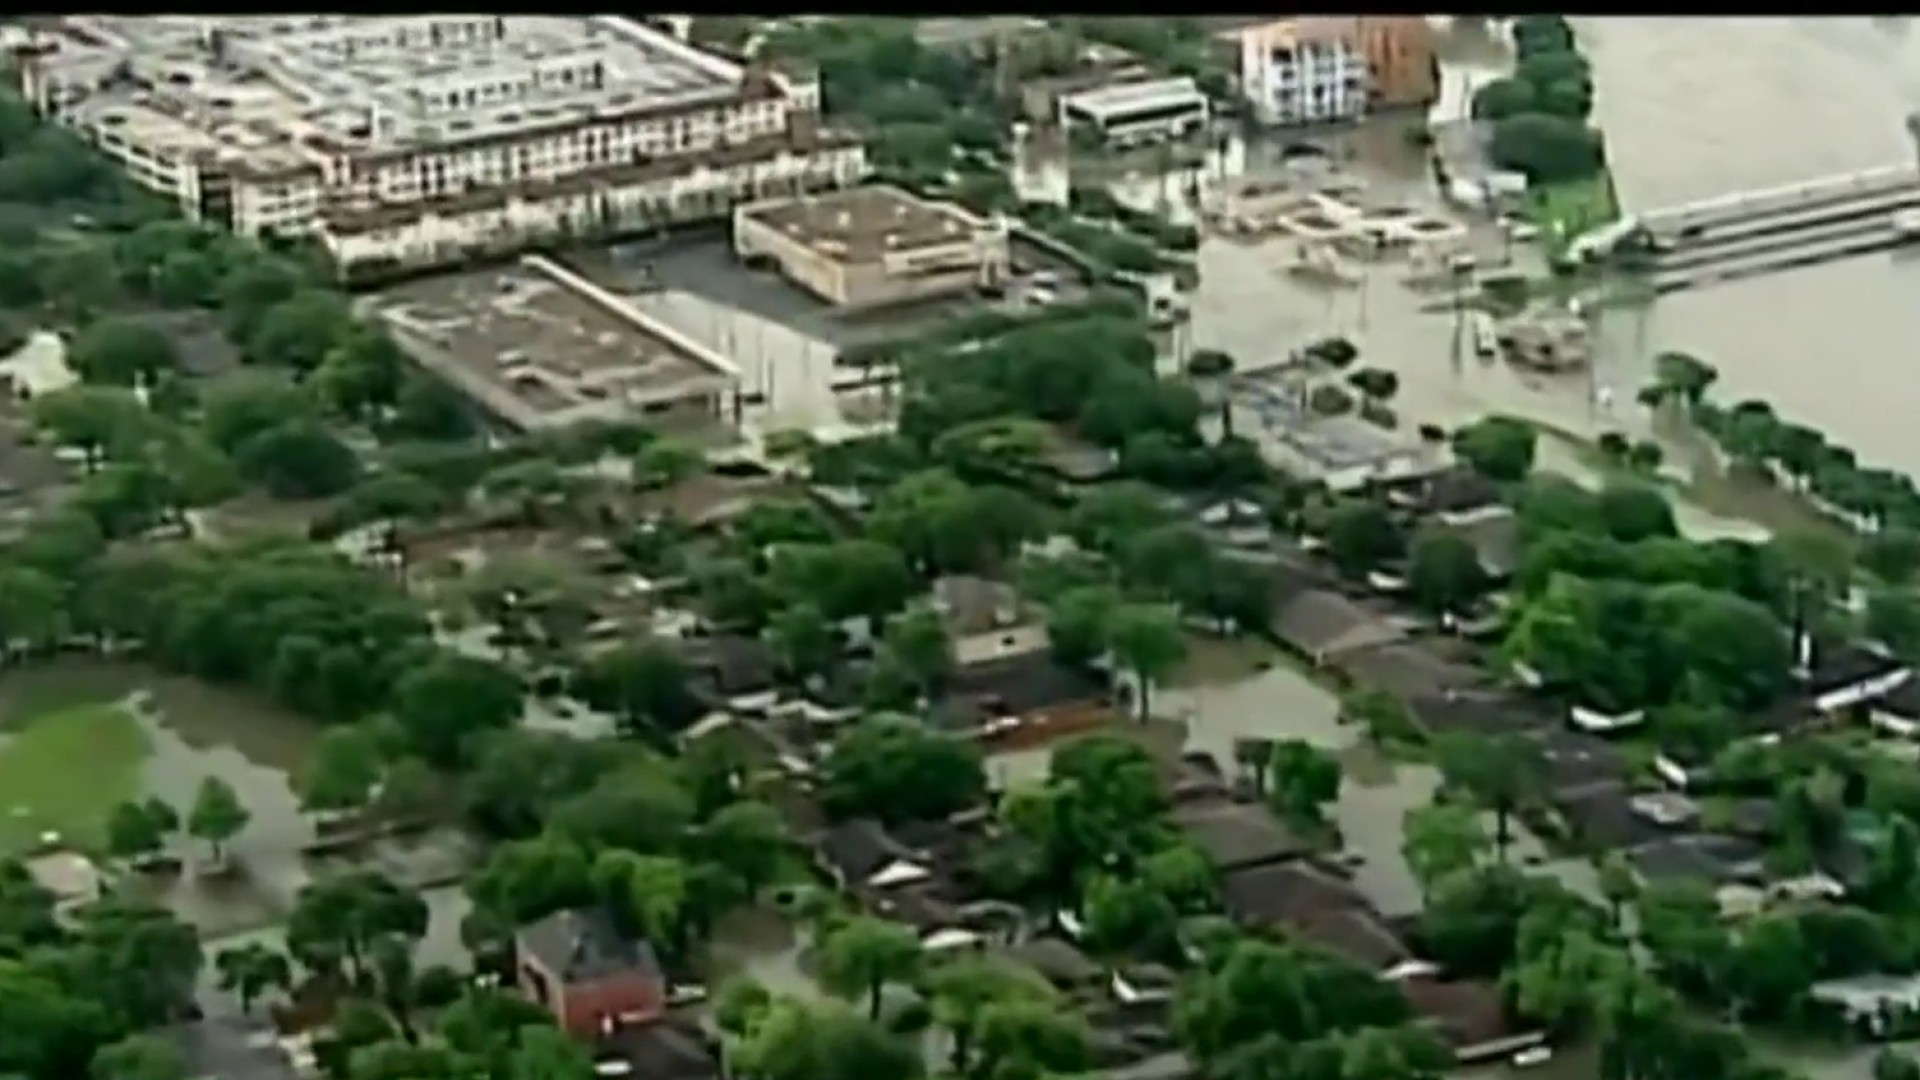 Texans facing increase in flood insurance premiums